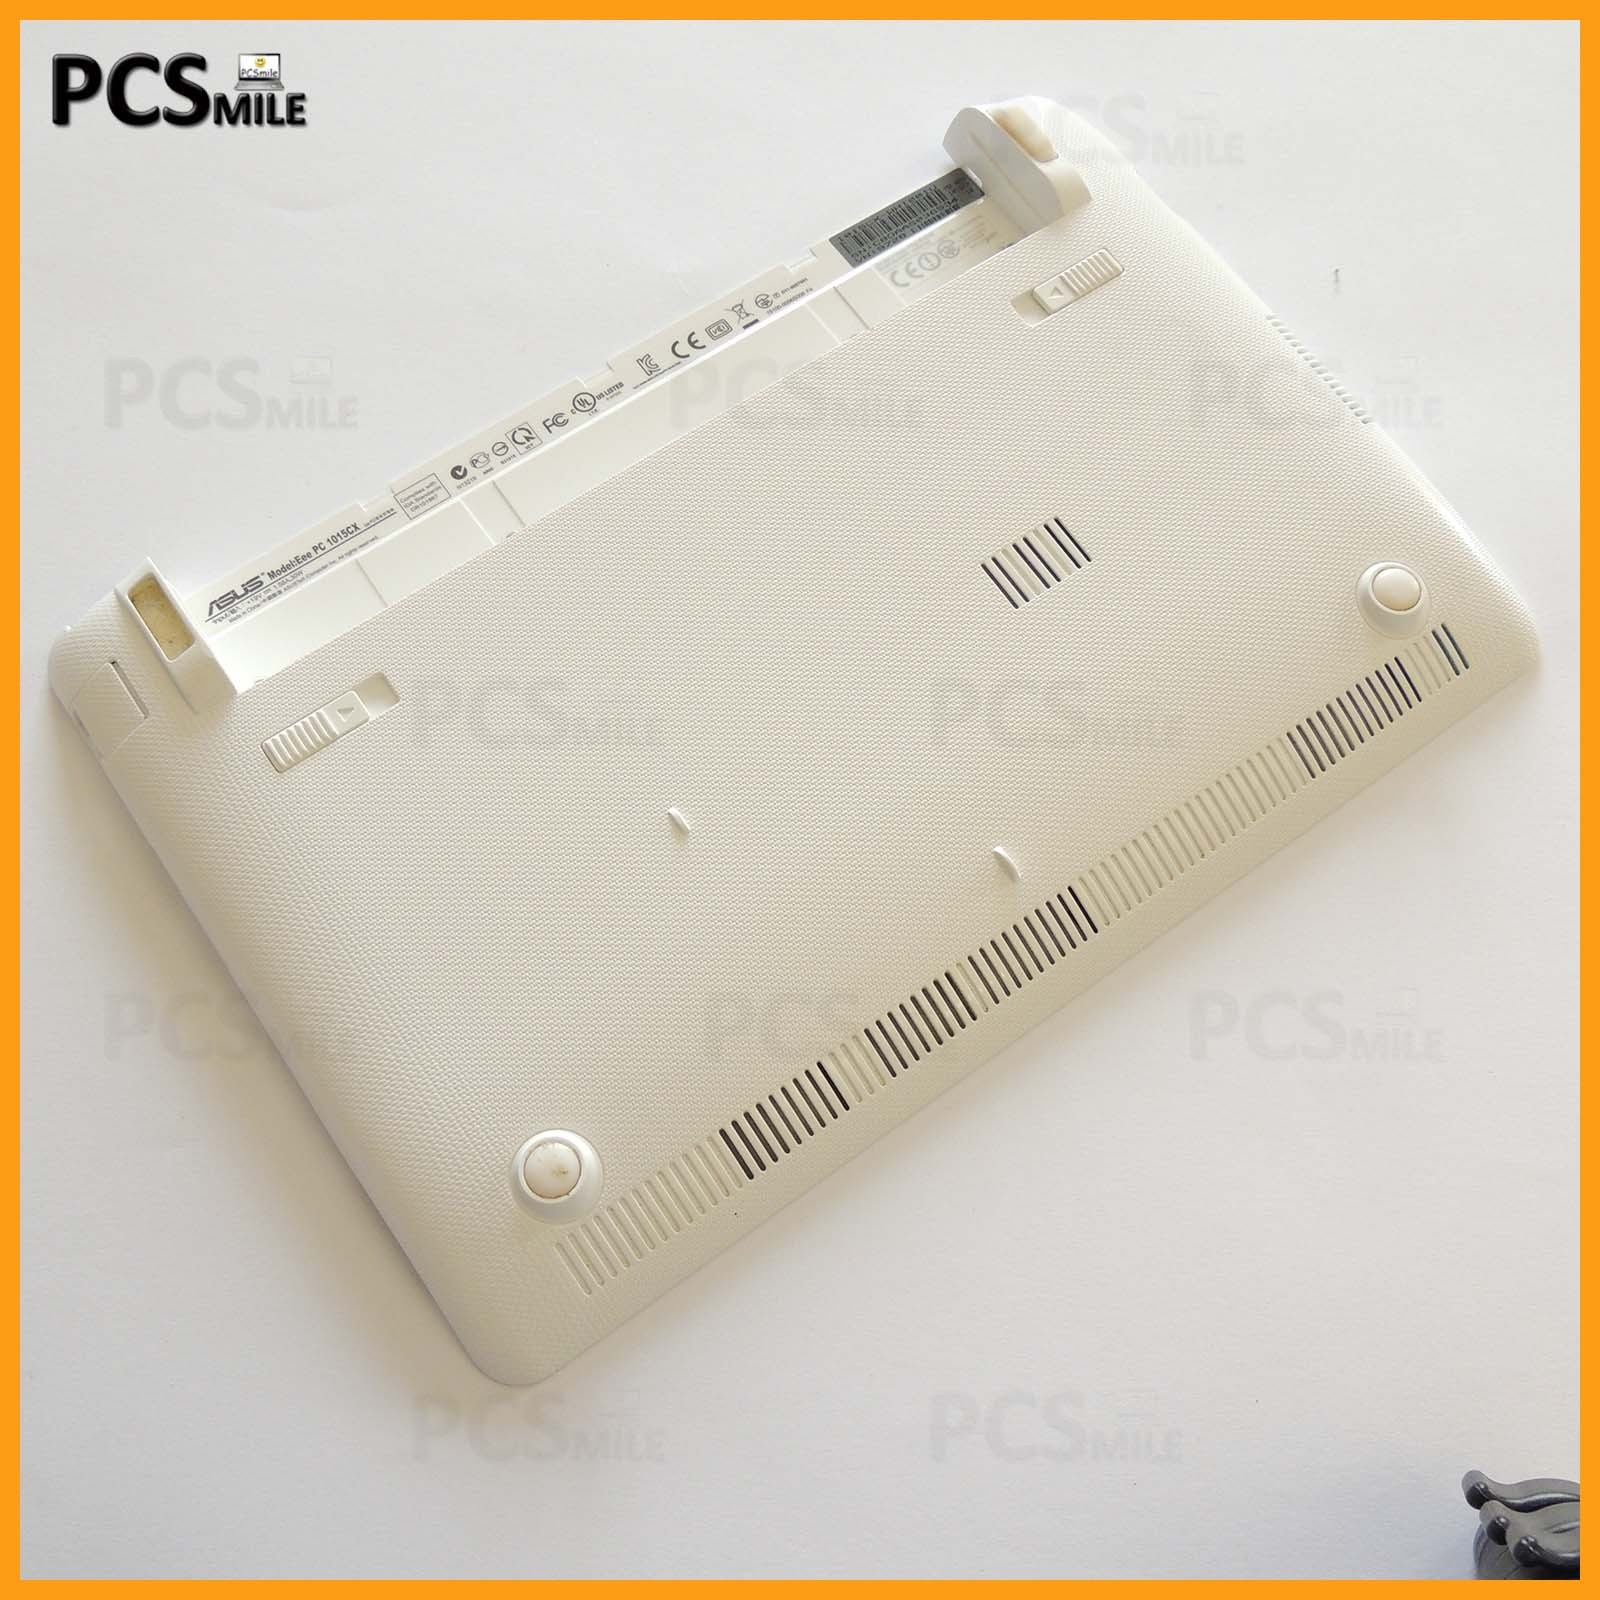 Scocca ORIGINALE inferiore asus Eee PC 1015cx 13GOA3S1AP051-20 case